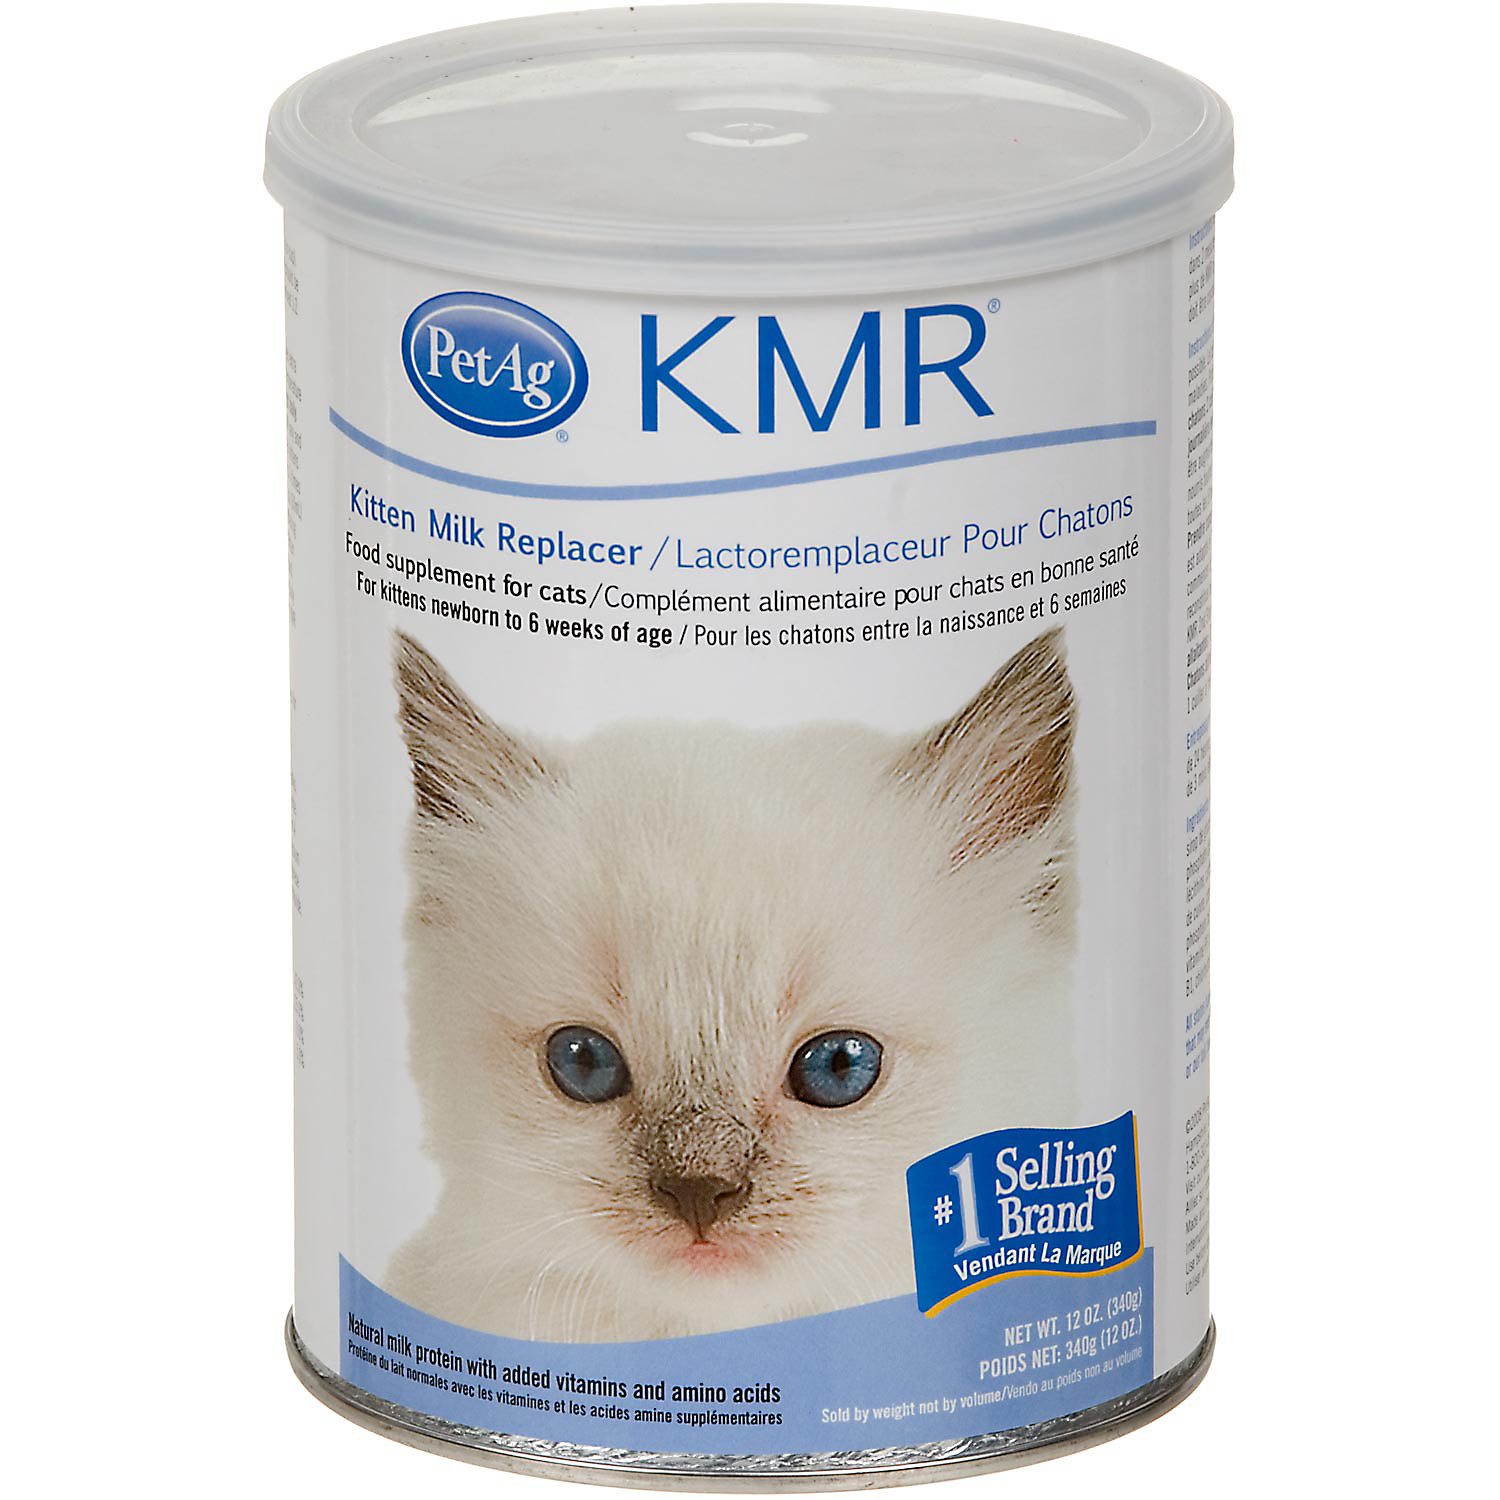 Petag Kmr Milk Replacer Food Supplement For Kittens Small Animals Powder